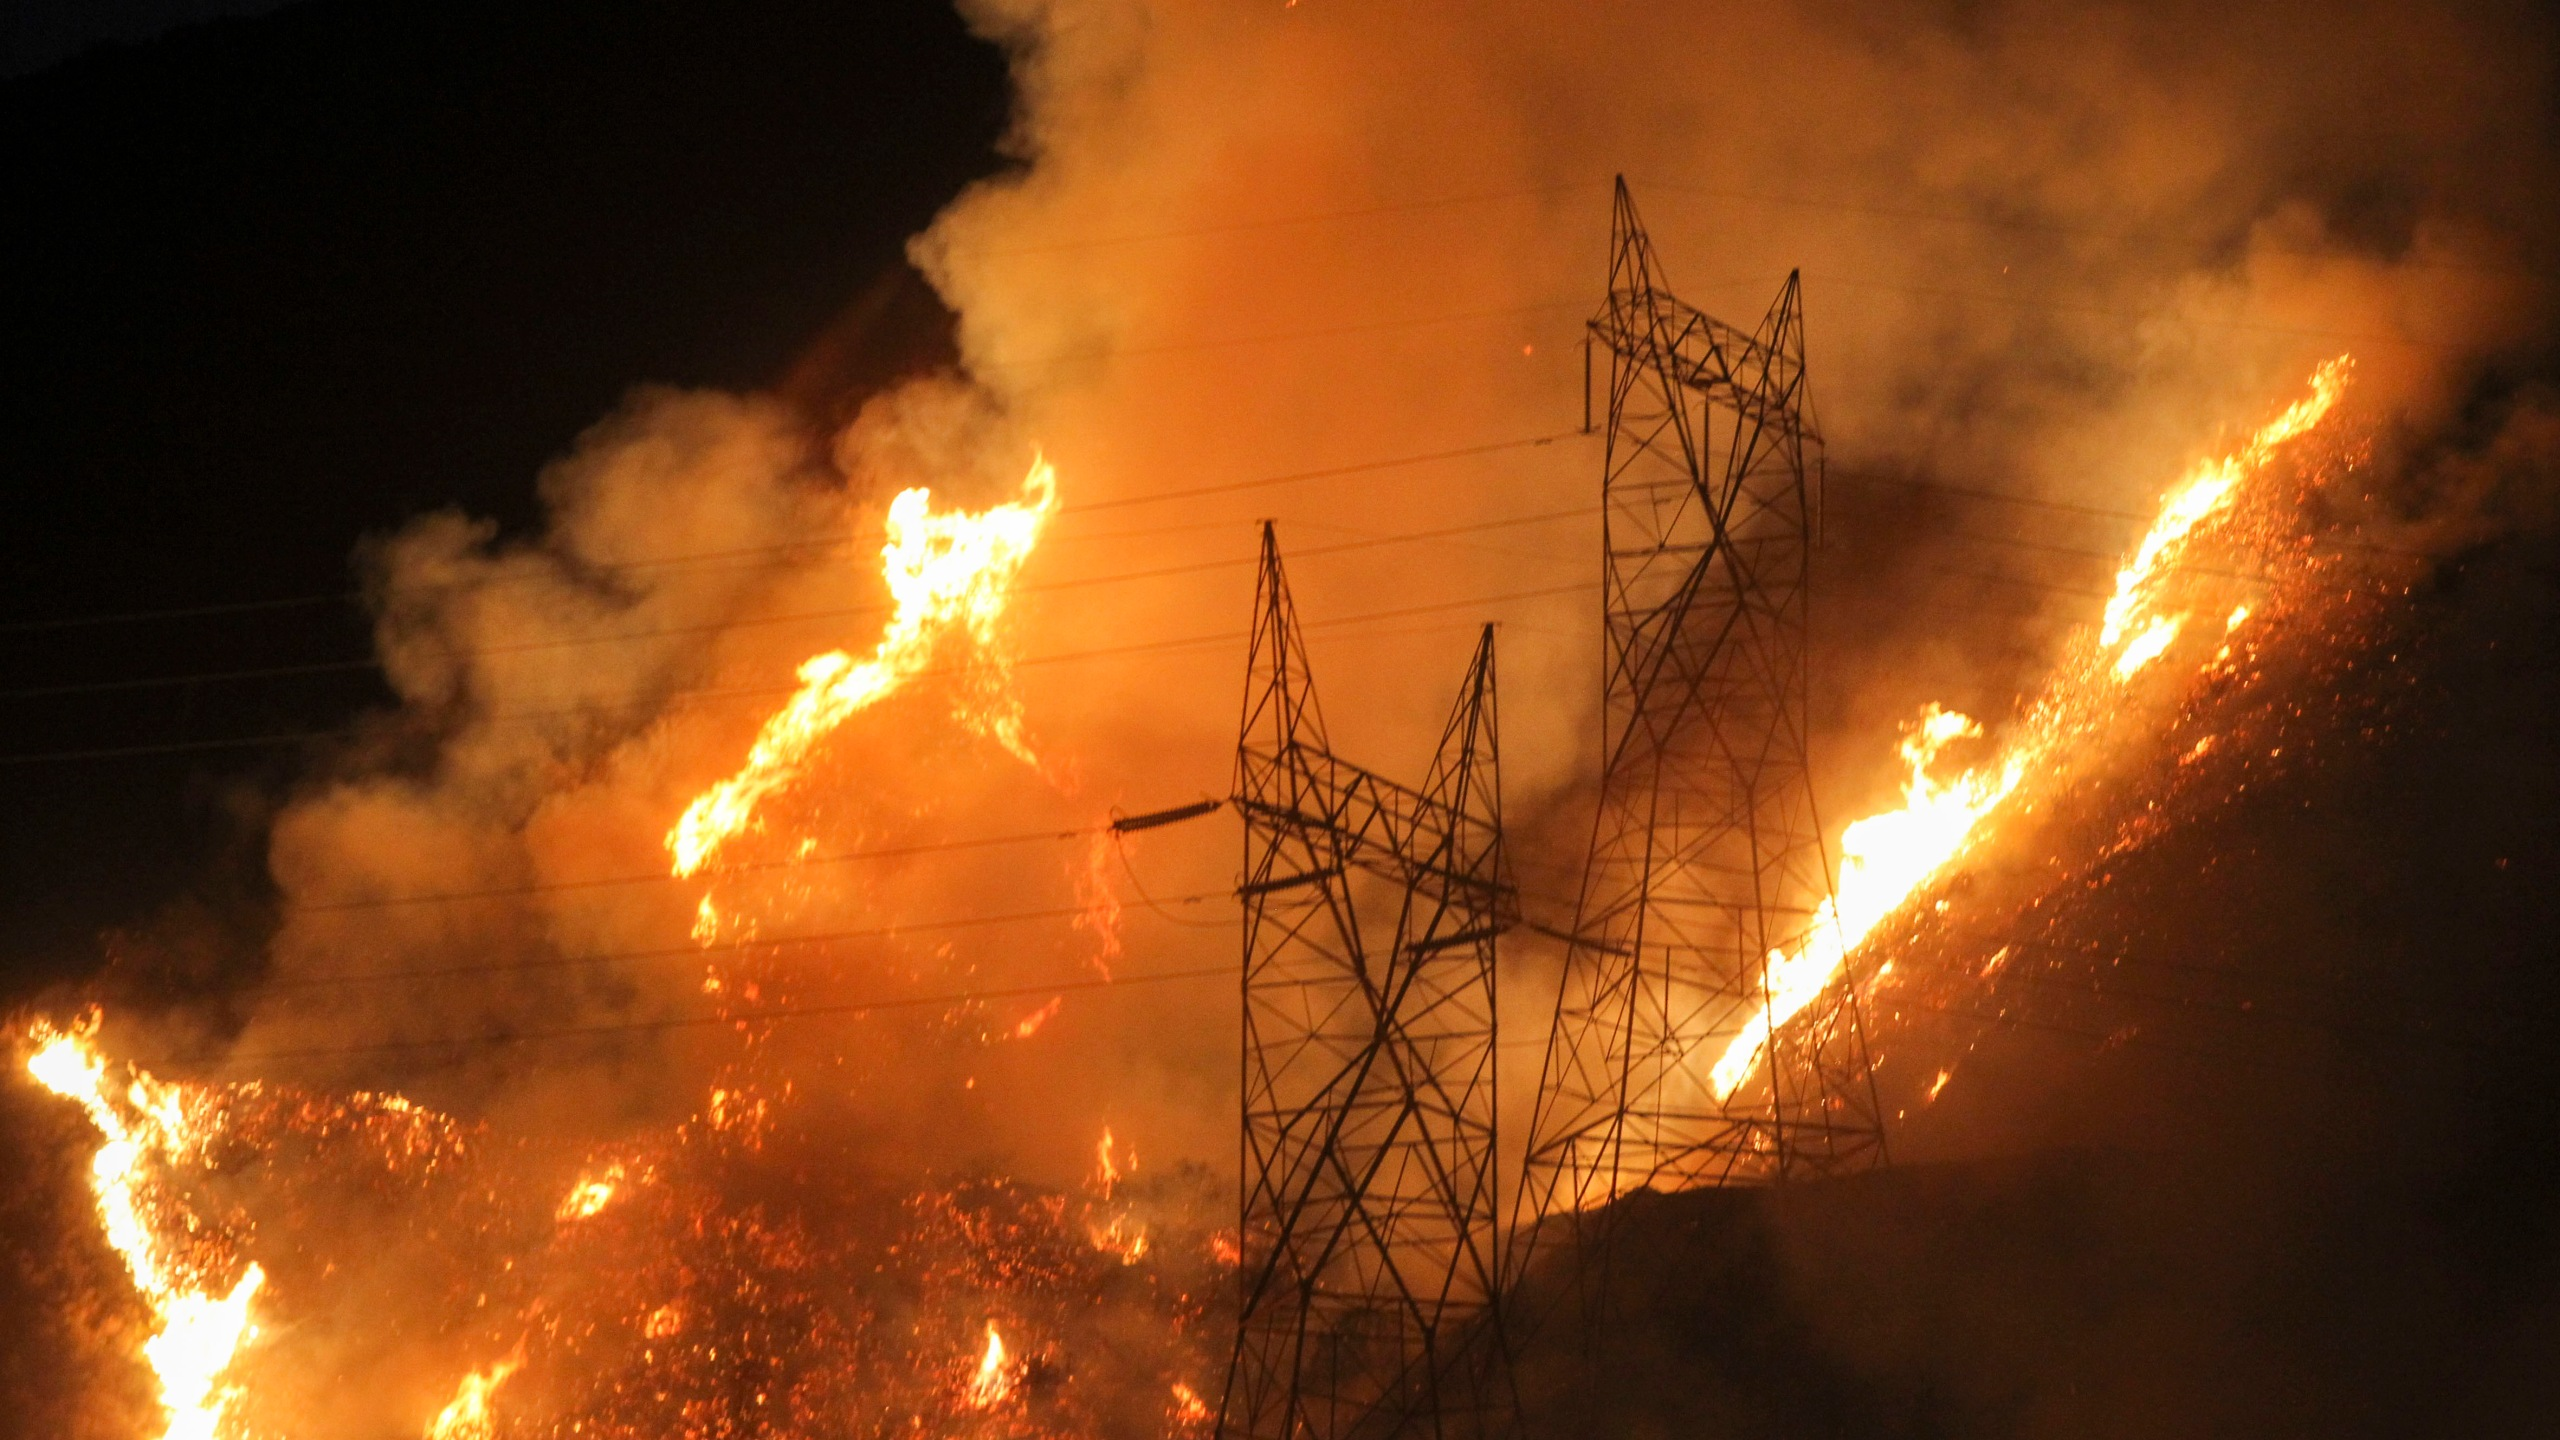 Flames flare up next to electric poles from the Blue Cut wildfire near Cajon Pass, north of San Bernardino, California on Aug. 16, 2016. (Credit: RINGO CHIU/AFP/Getty Images)